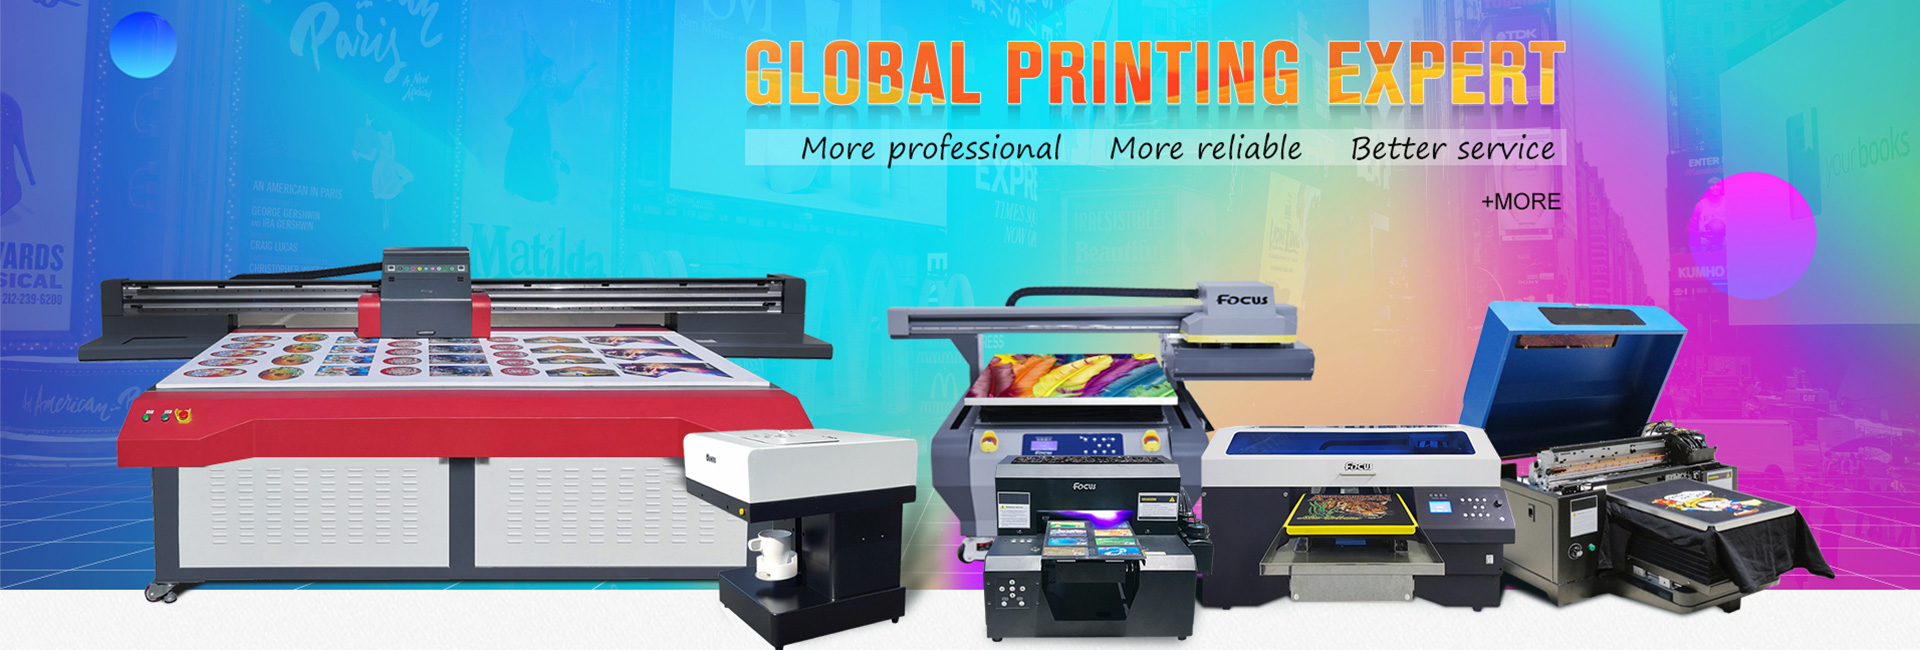 Uv flatbed printer from Focus Inc